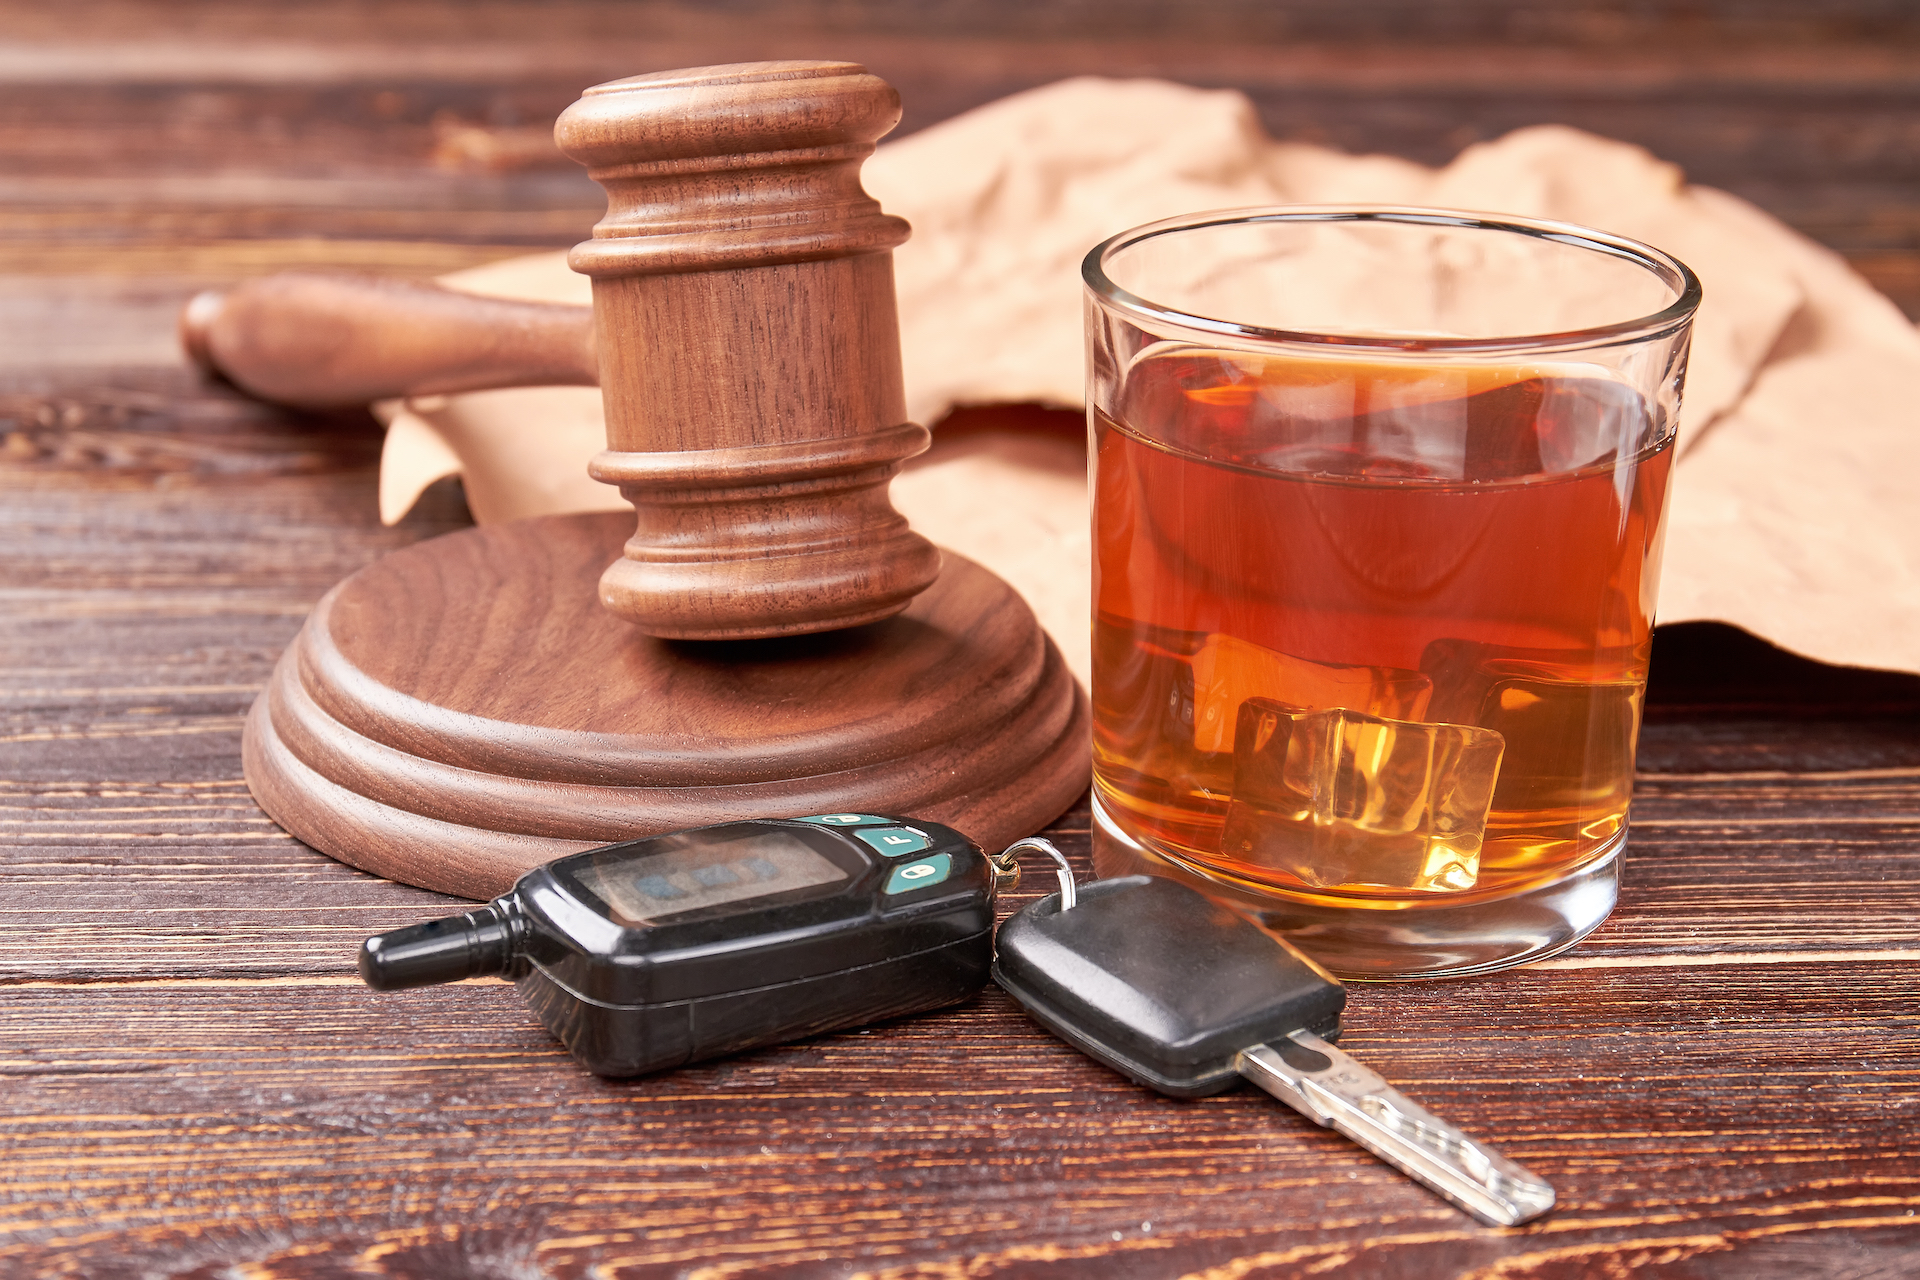 drunk driving - Personal Injury Attorney in Nashville - Wrongful Death Attorney, Truck Accident Lawyer, Car Accident Lawyer, and more | Meyers Injury Law